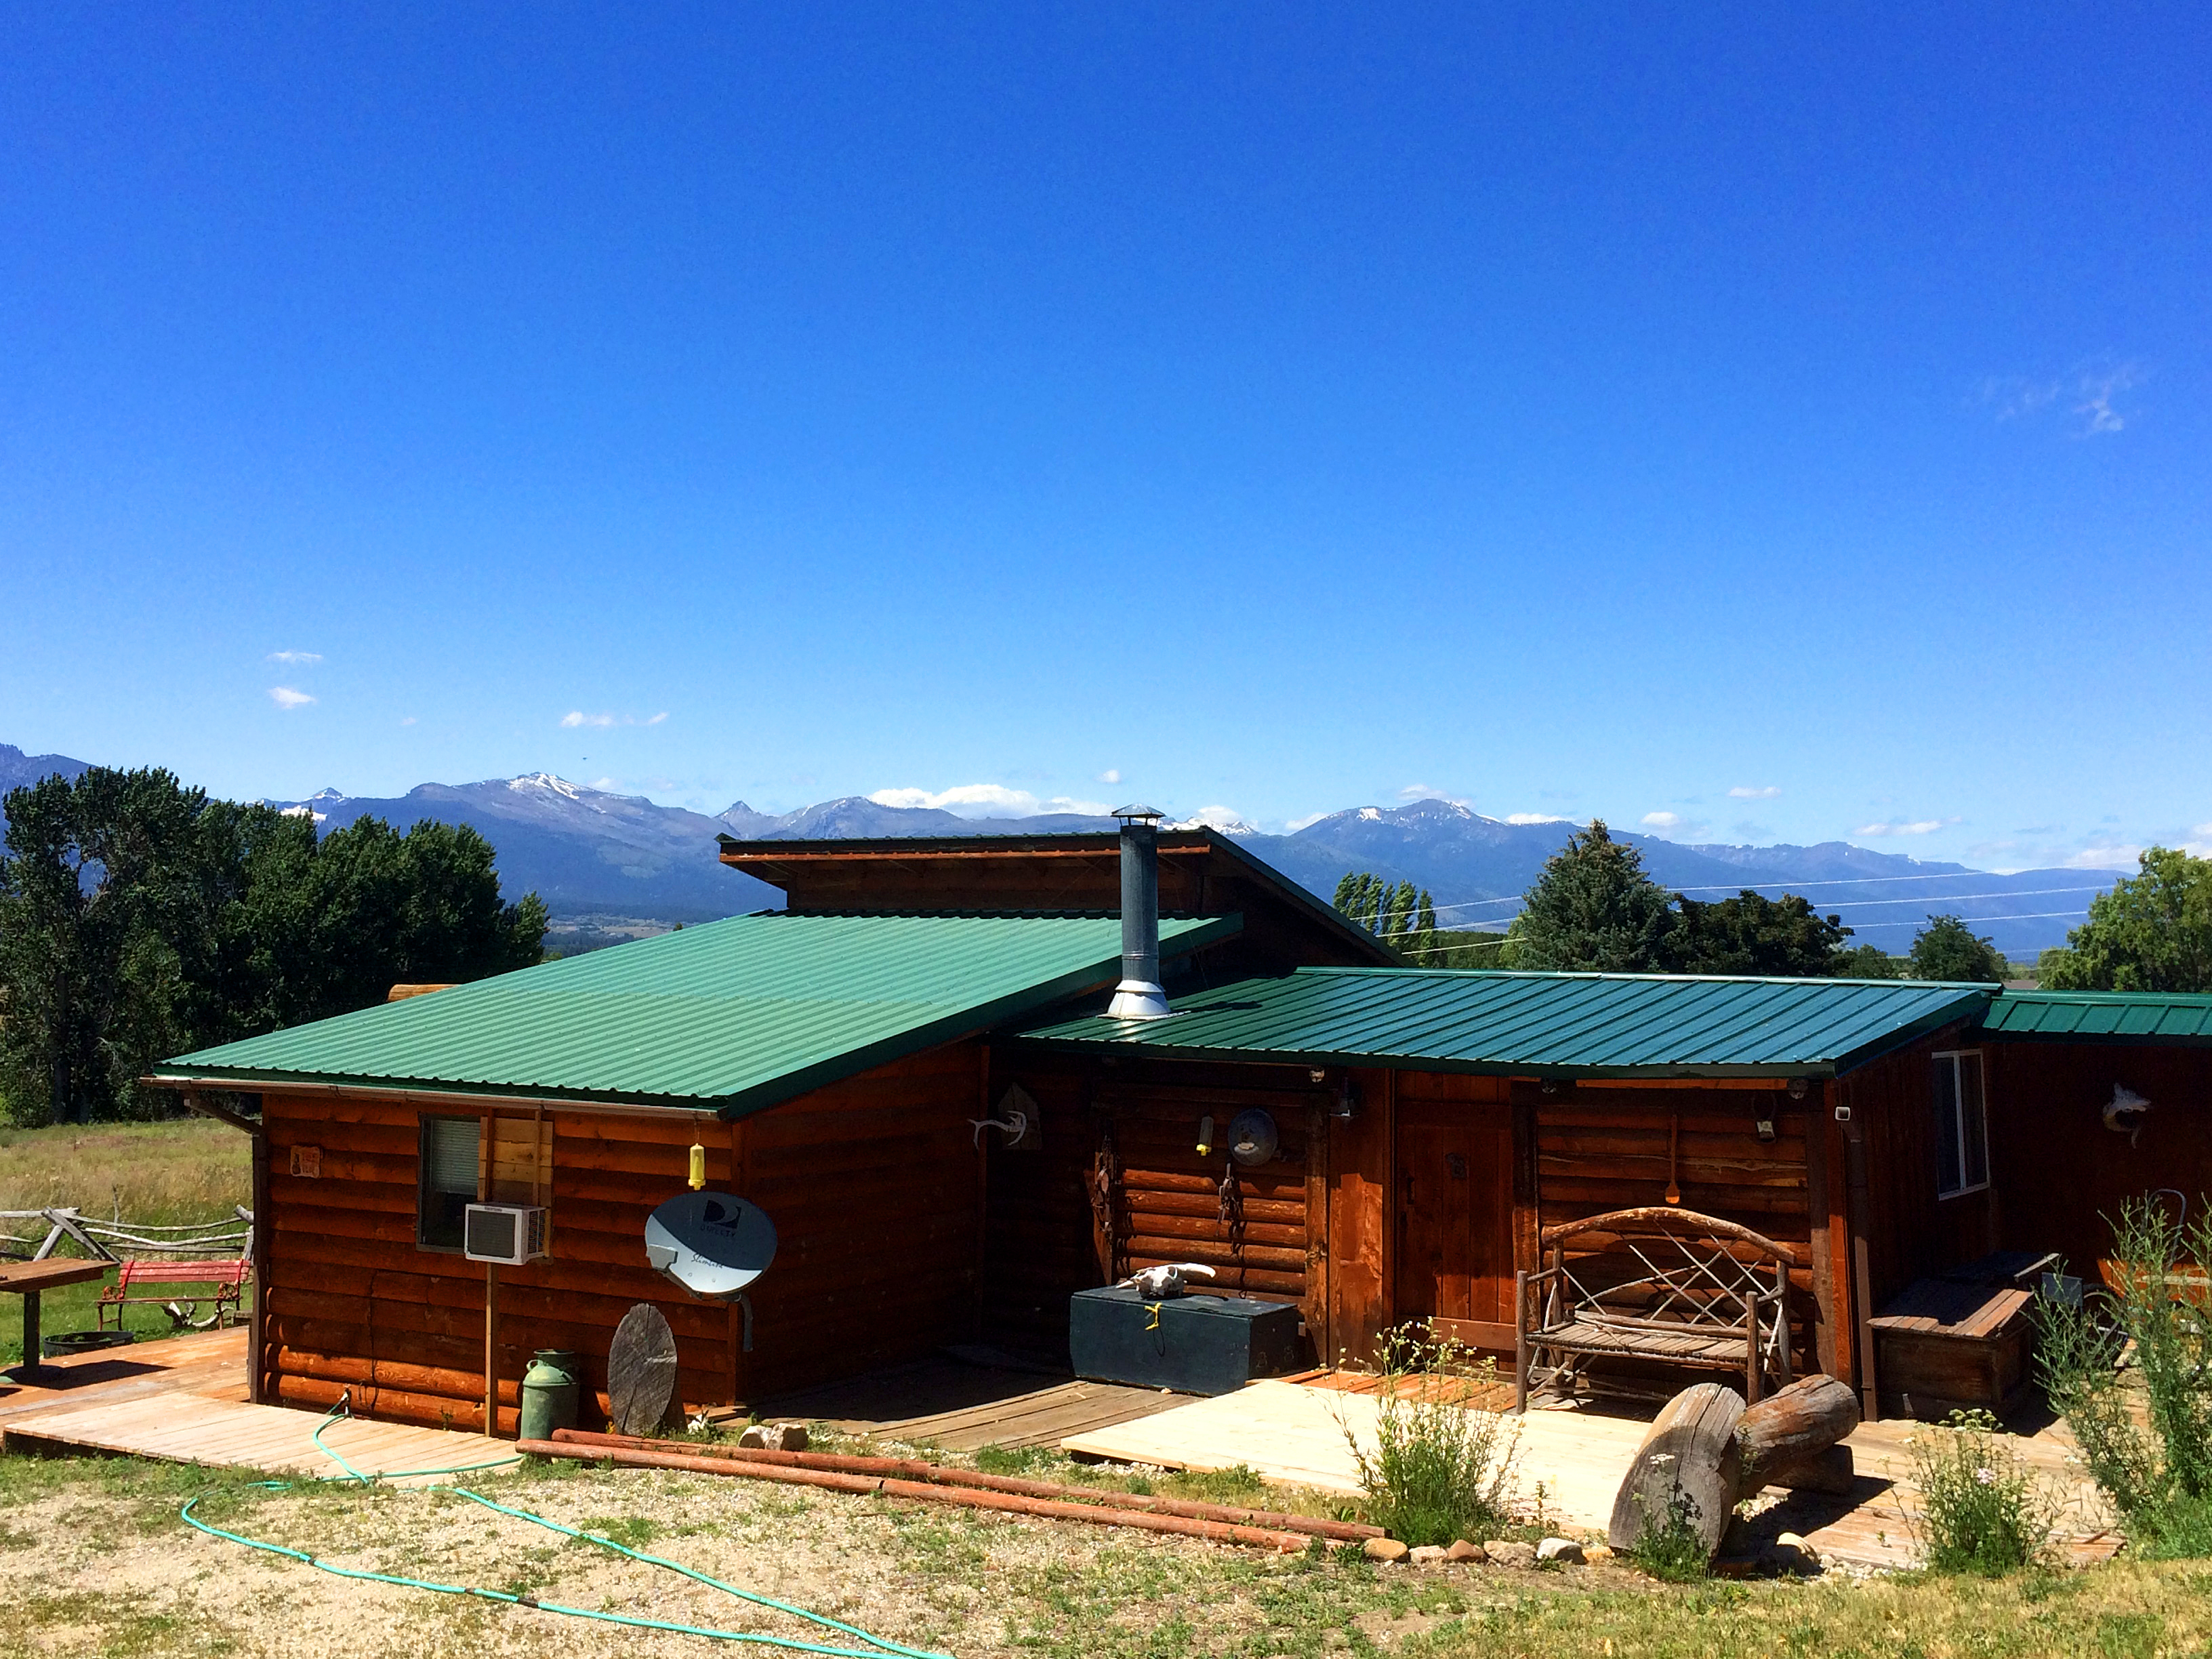 montana near affordable park rentals rocky aw cabin cabins amberwood html national vacation img mountain countrycabins